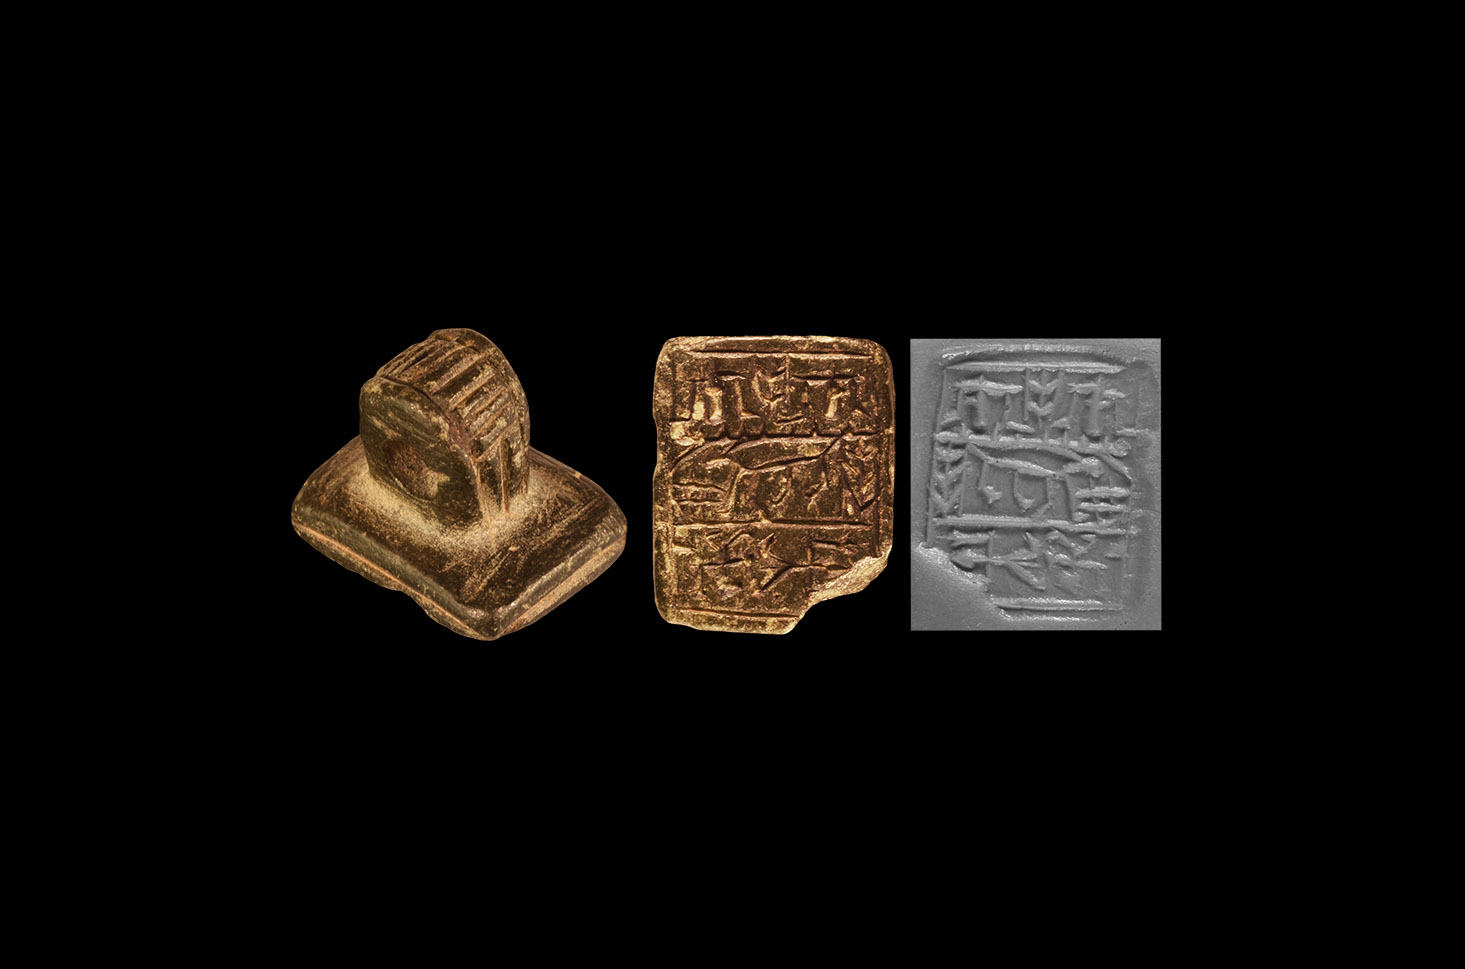 Western Asiatic Stamp Seal Pendant